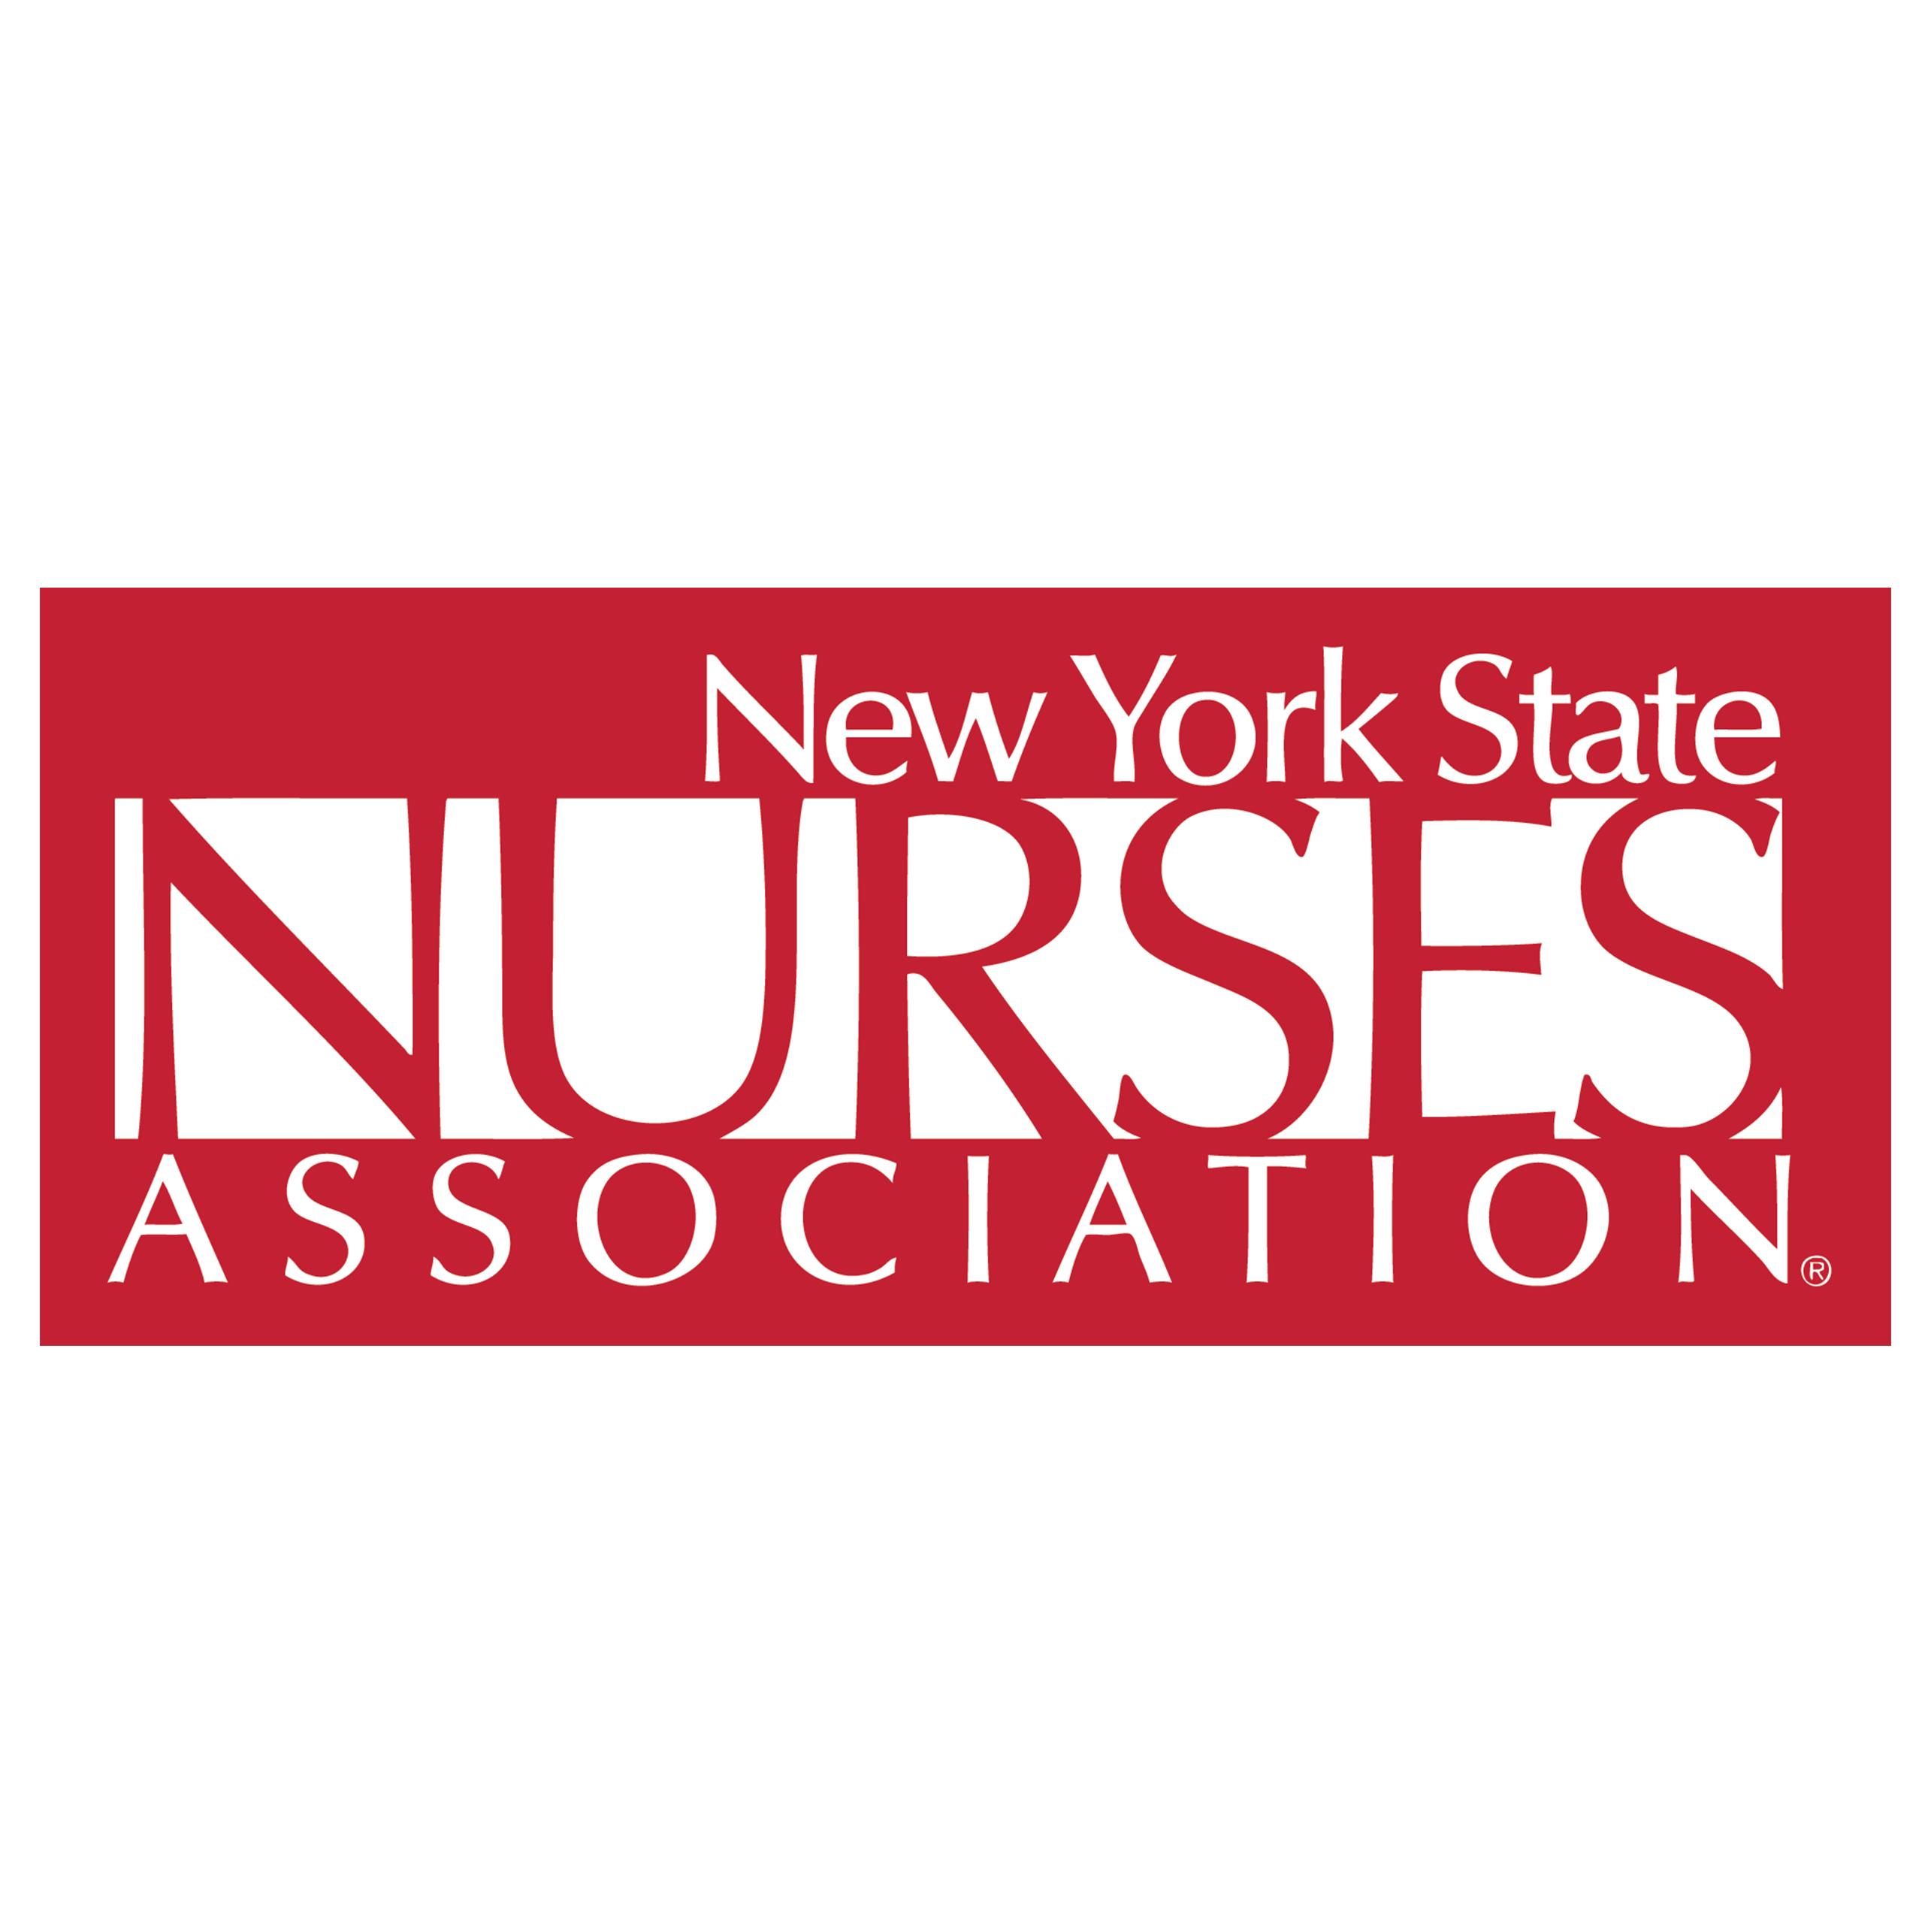 New York State Nurses Association logo